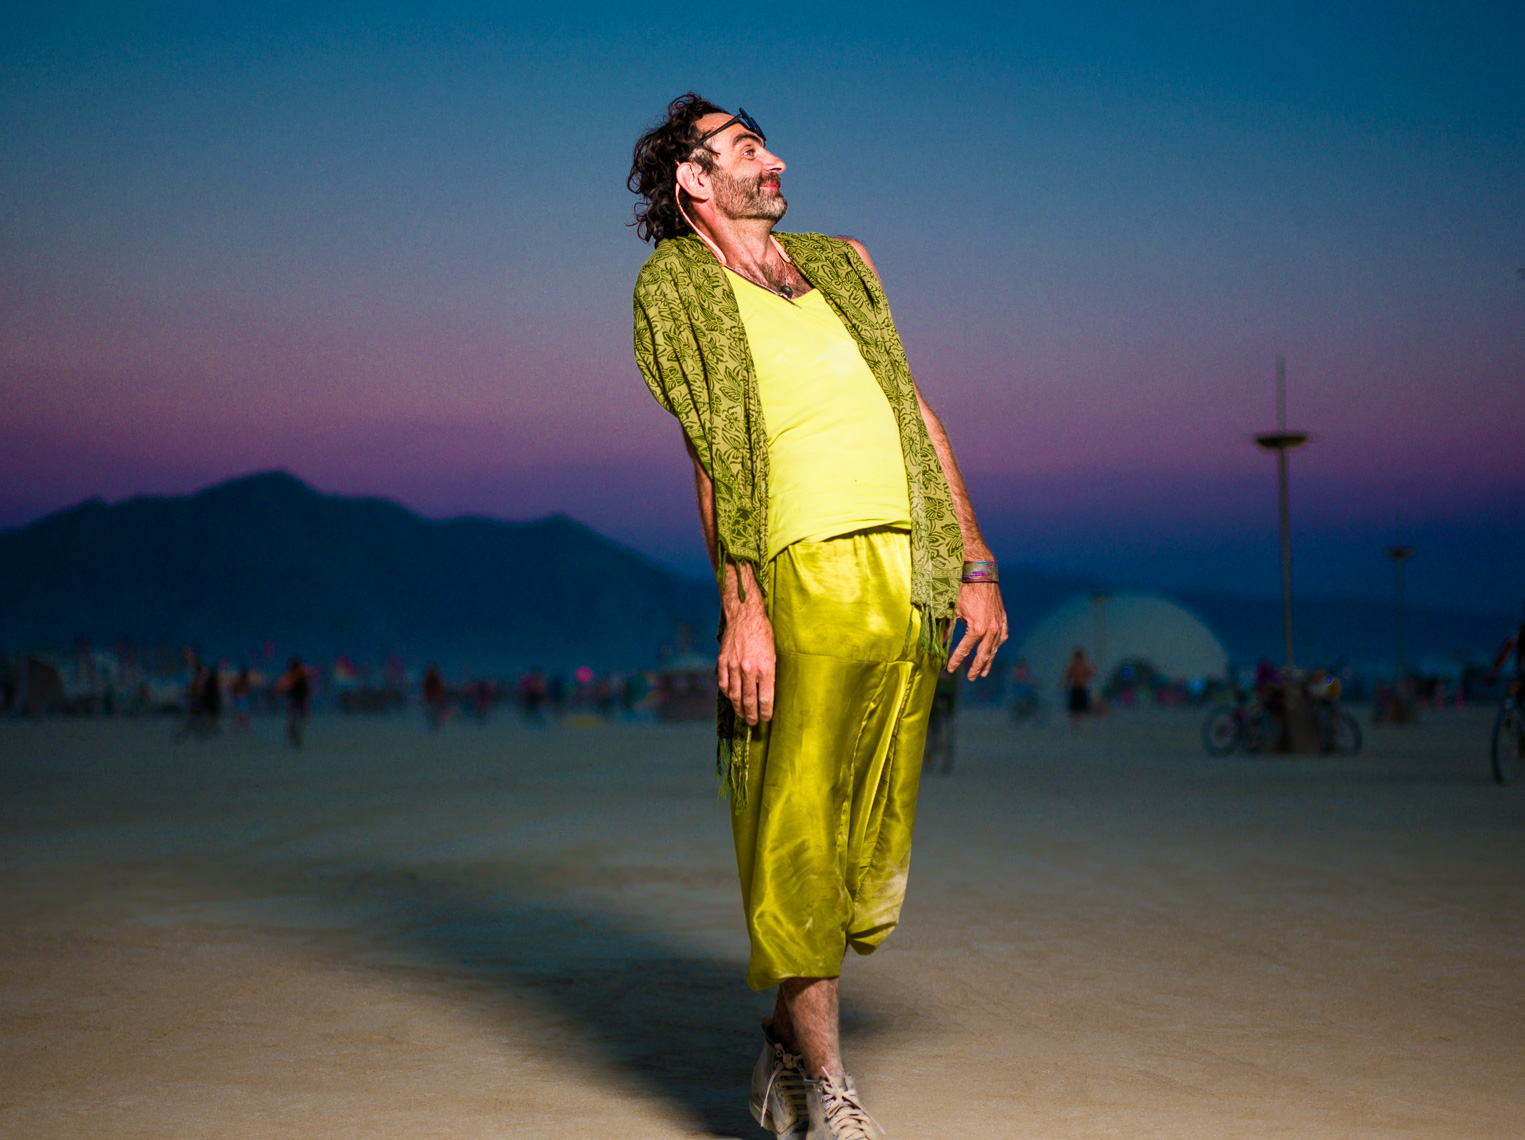 Eric_Schwabel-Burning Man 2013_008568